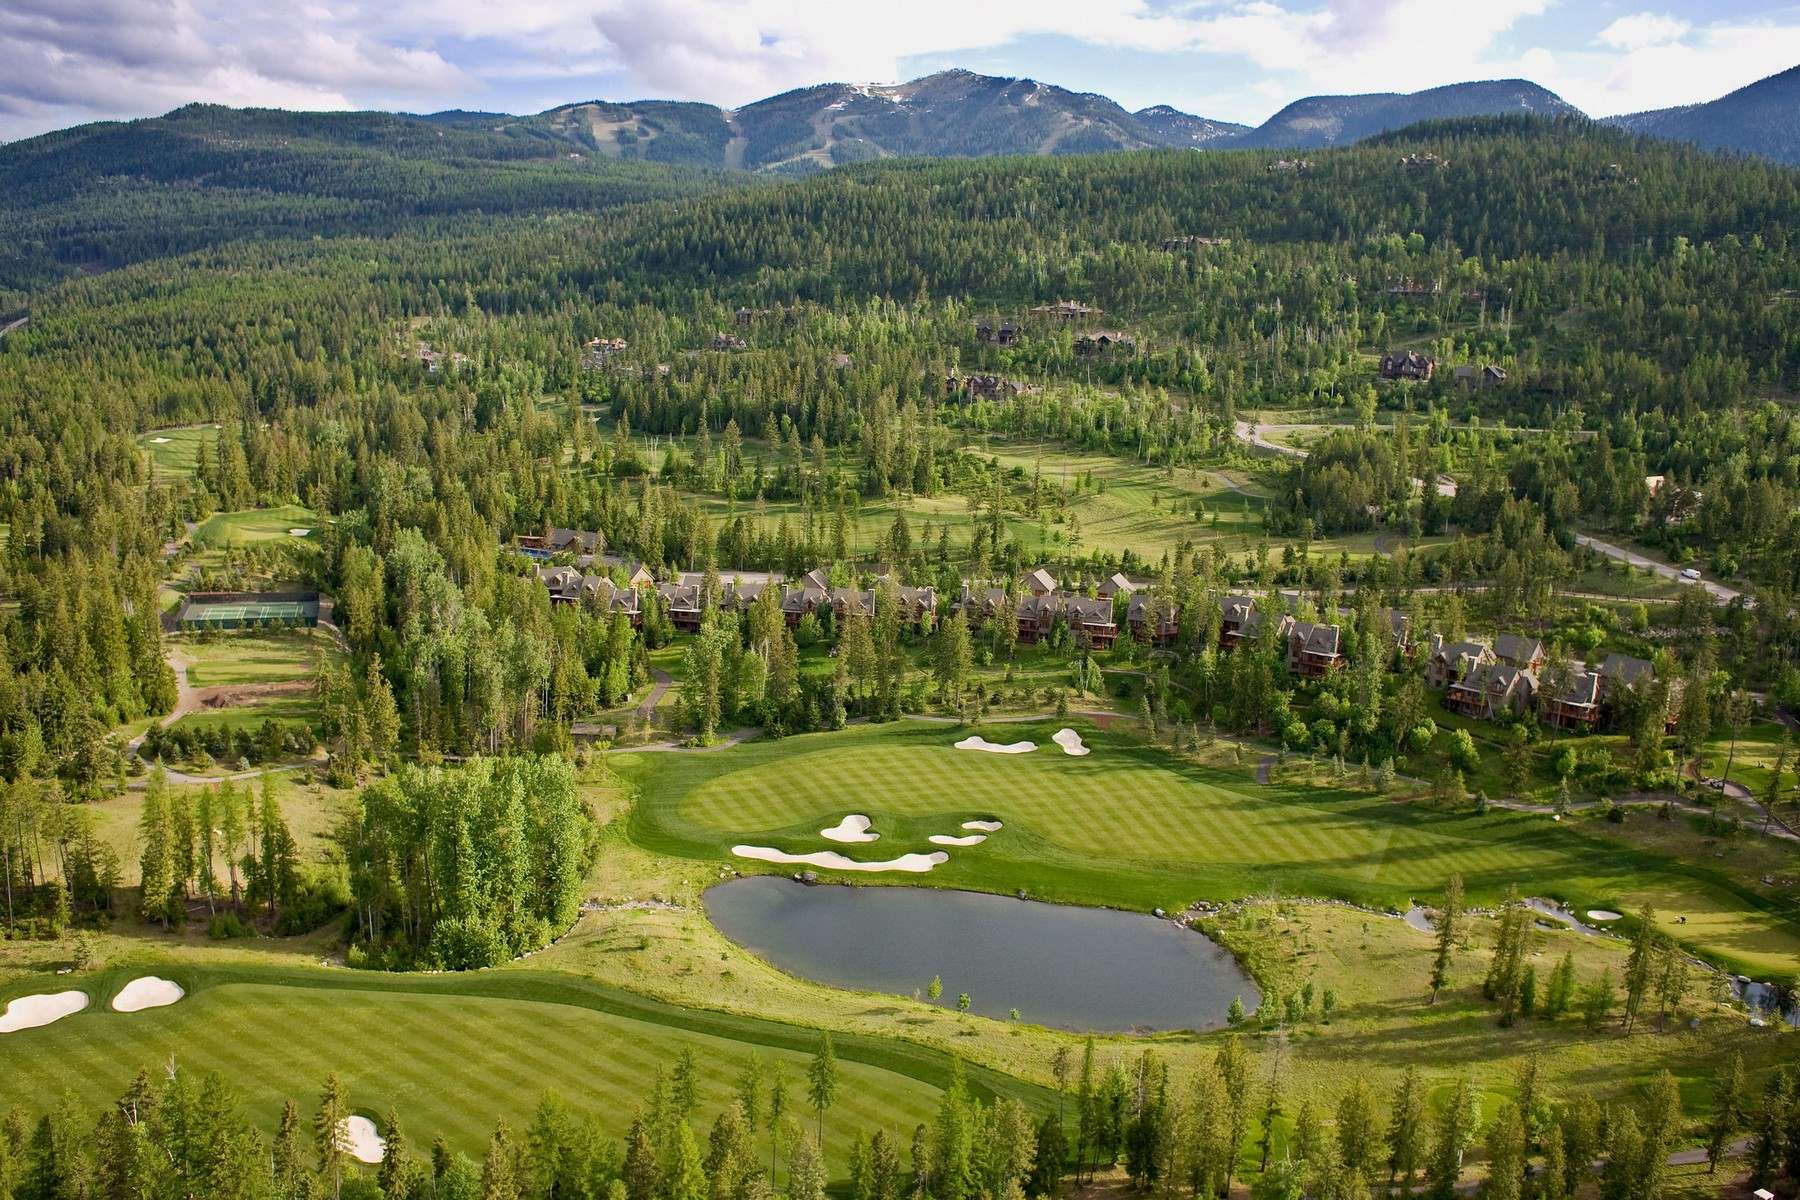 Land for Sale at 301 Sugarbowl Cir , Whitefish, MT 59937 301 Sugarbowl Cir Whitefish, Montana 59937 United States